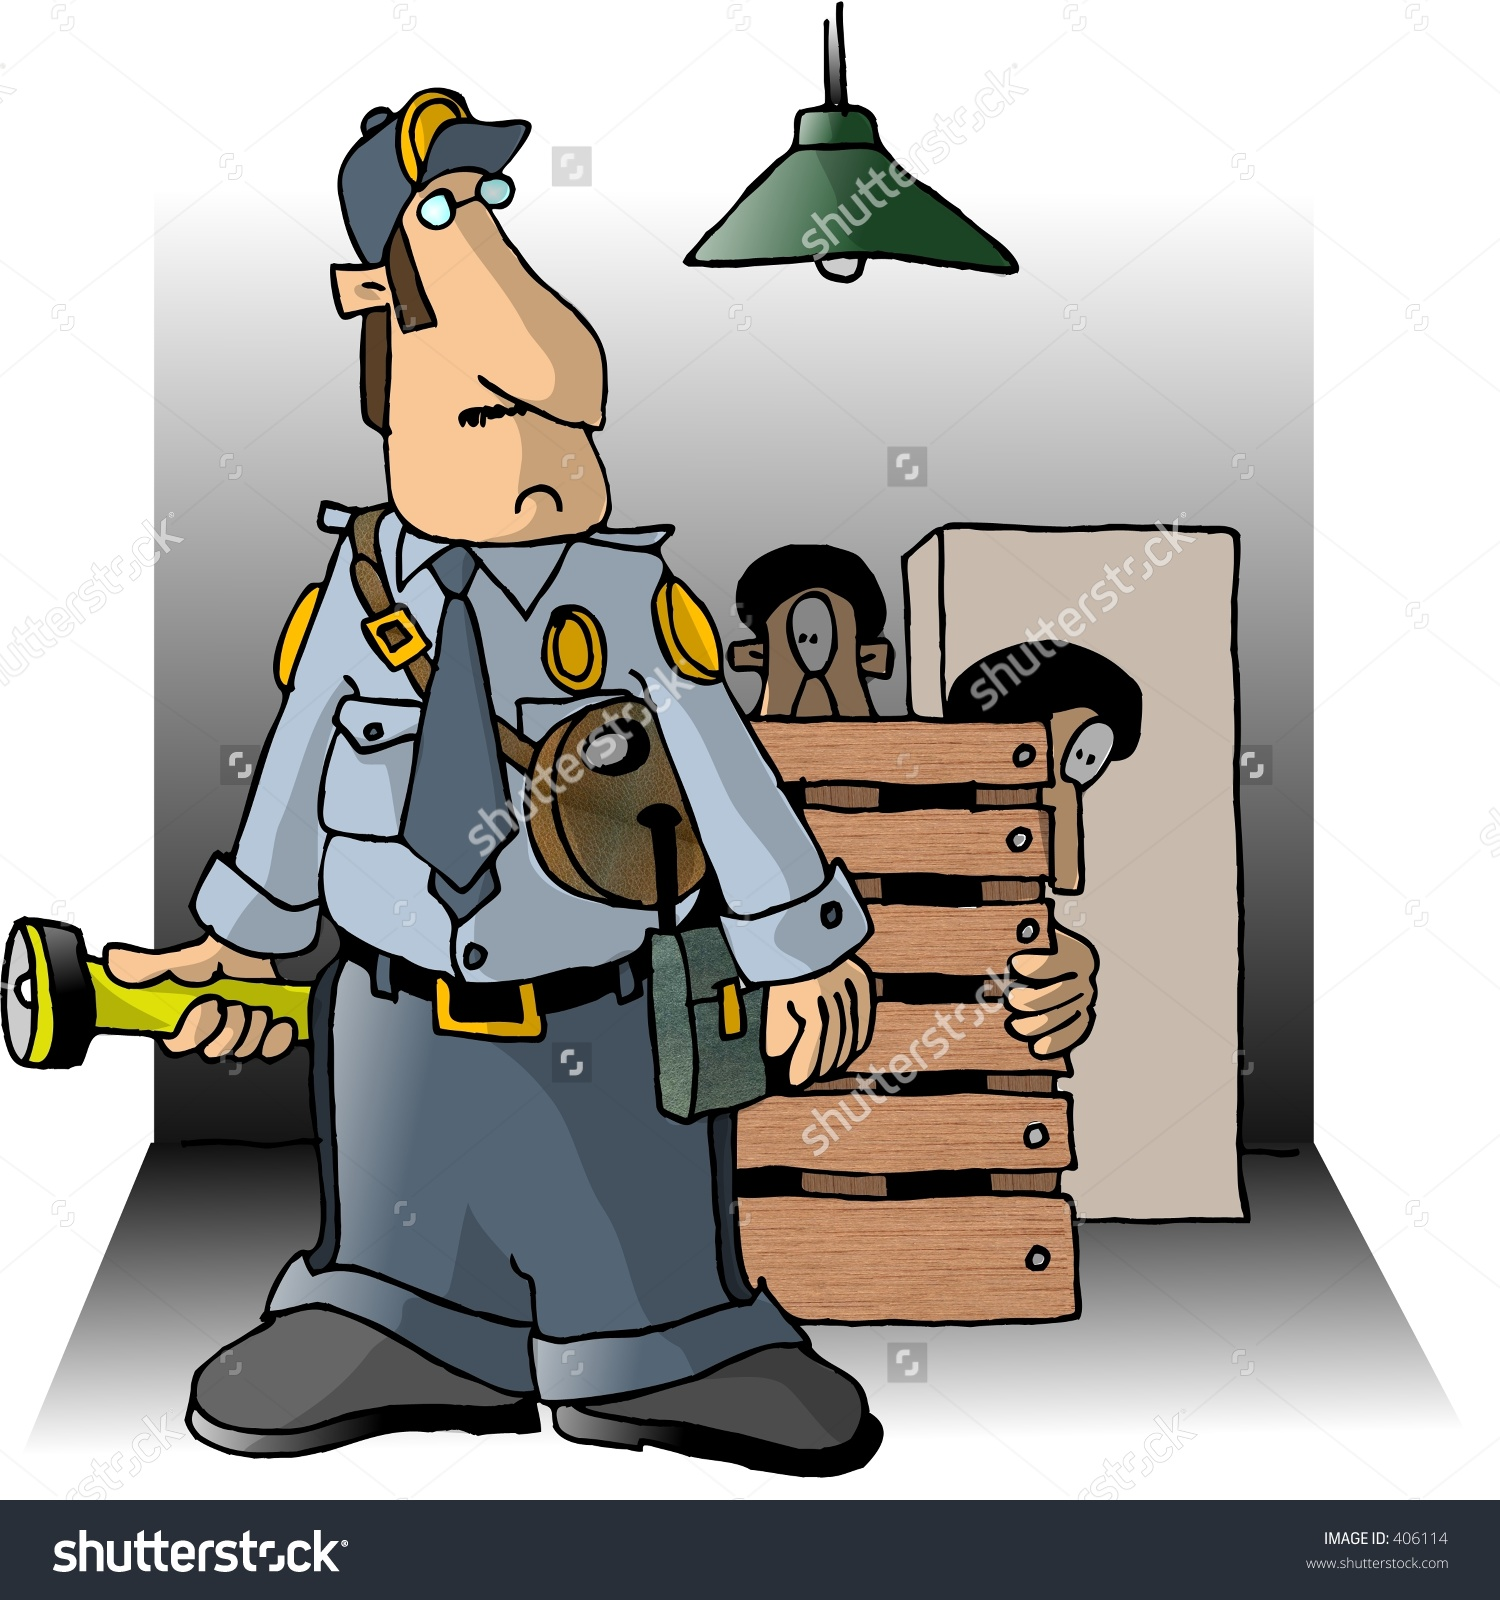 Clipart of security guard vector stock Clipart Illustration Of A Security Guard - 406114 : Shutterstock vector stock